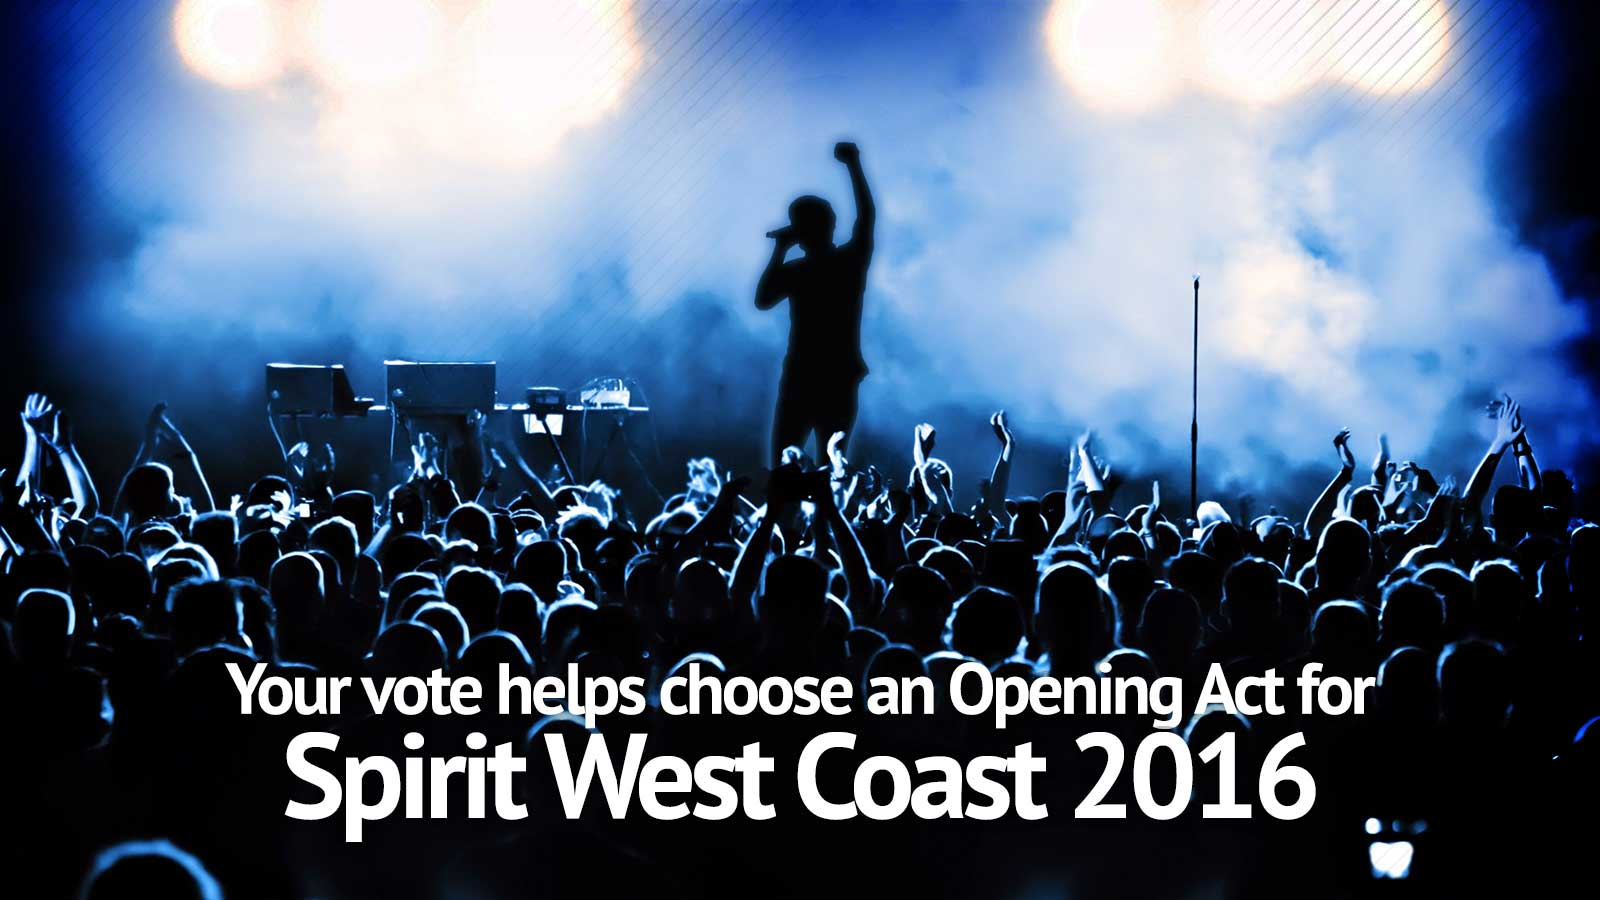 Opening Act for Spirit West Coast